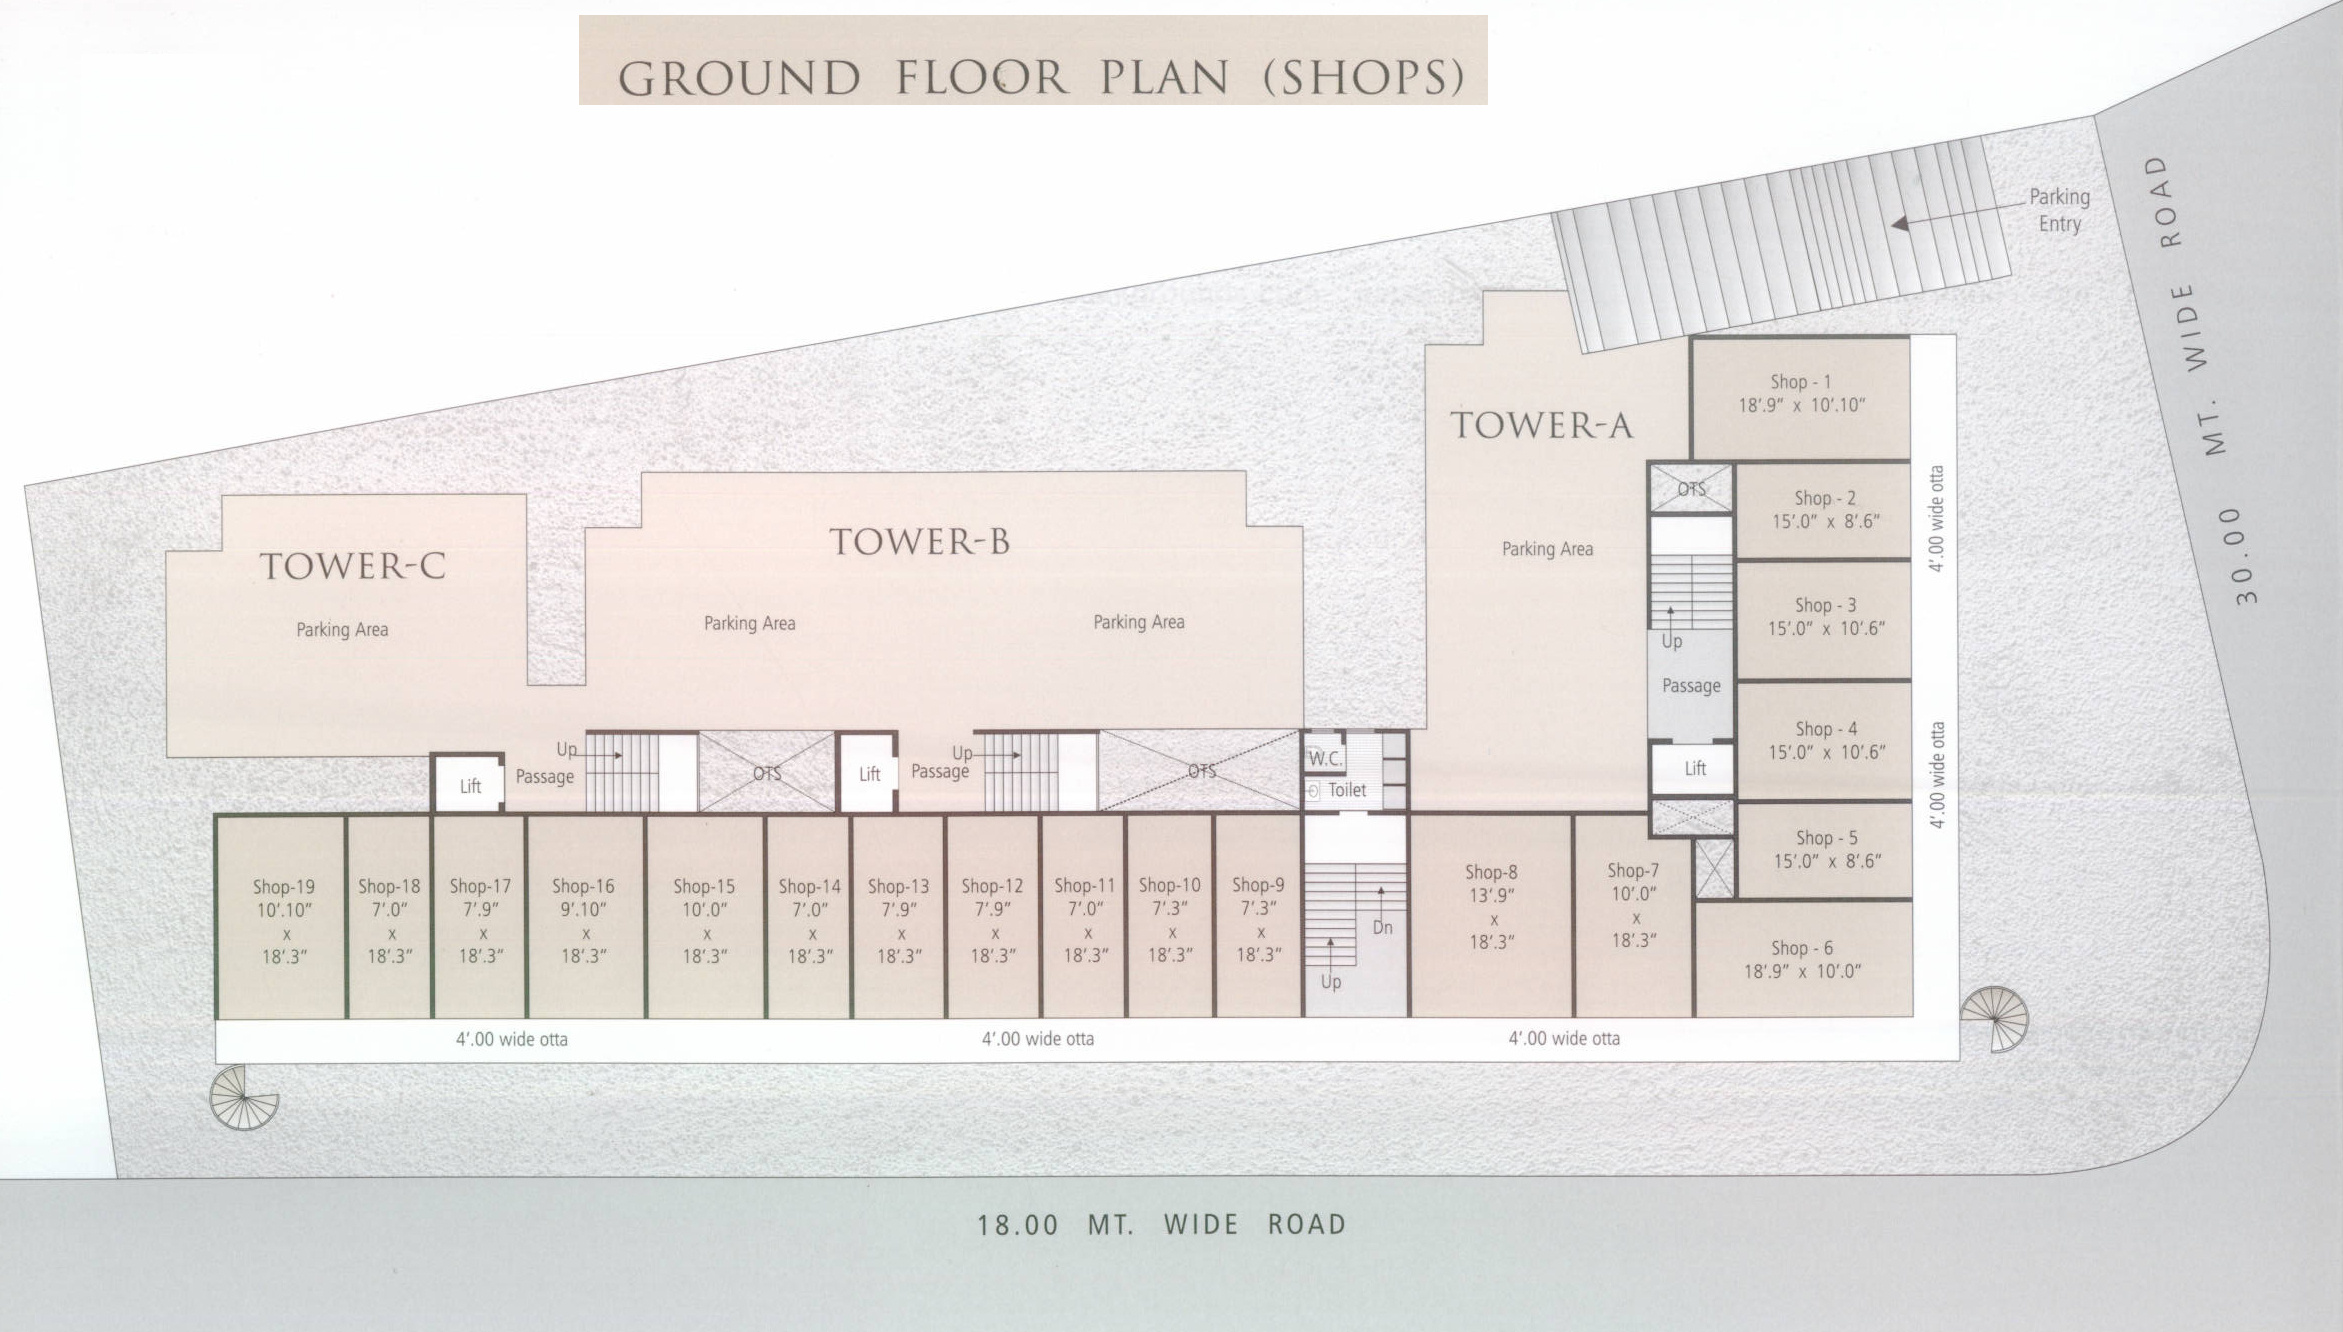 100 Sears Tower Floor Plan 100 Victorian Homes  : anand exotica tower a b c cluster plan for ground floor 656618 from 45.76.66.238 size 2343 x 1332 jpeg 719kB